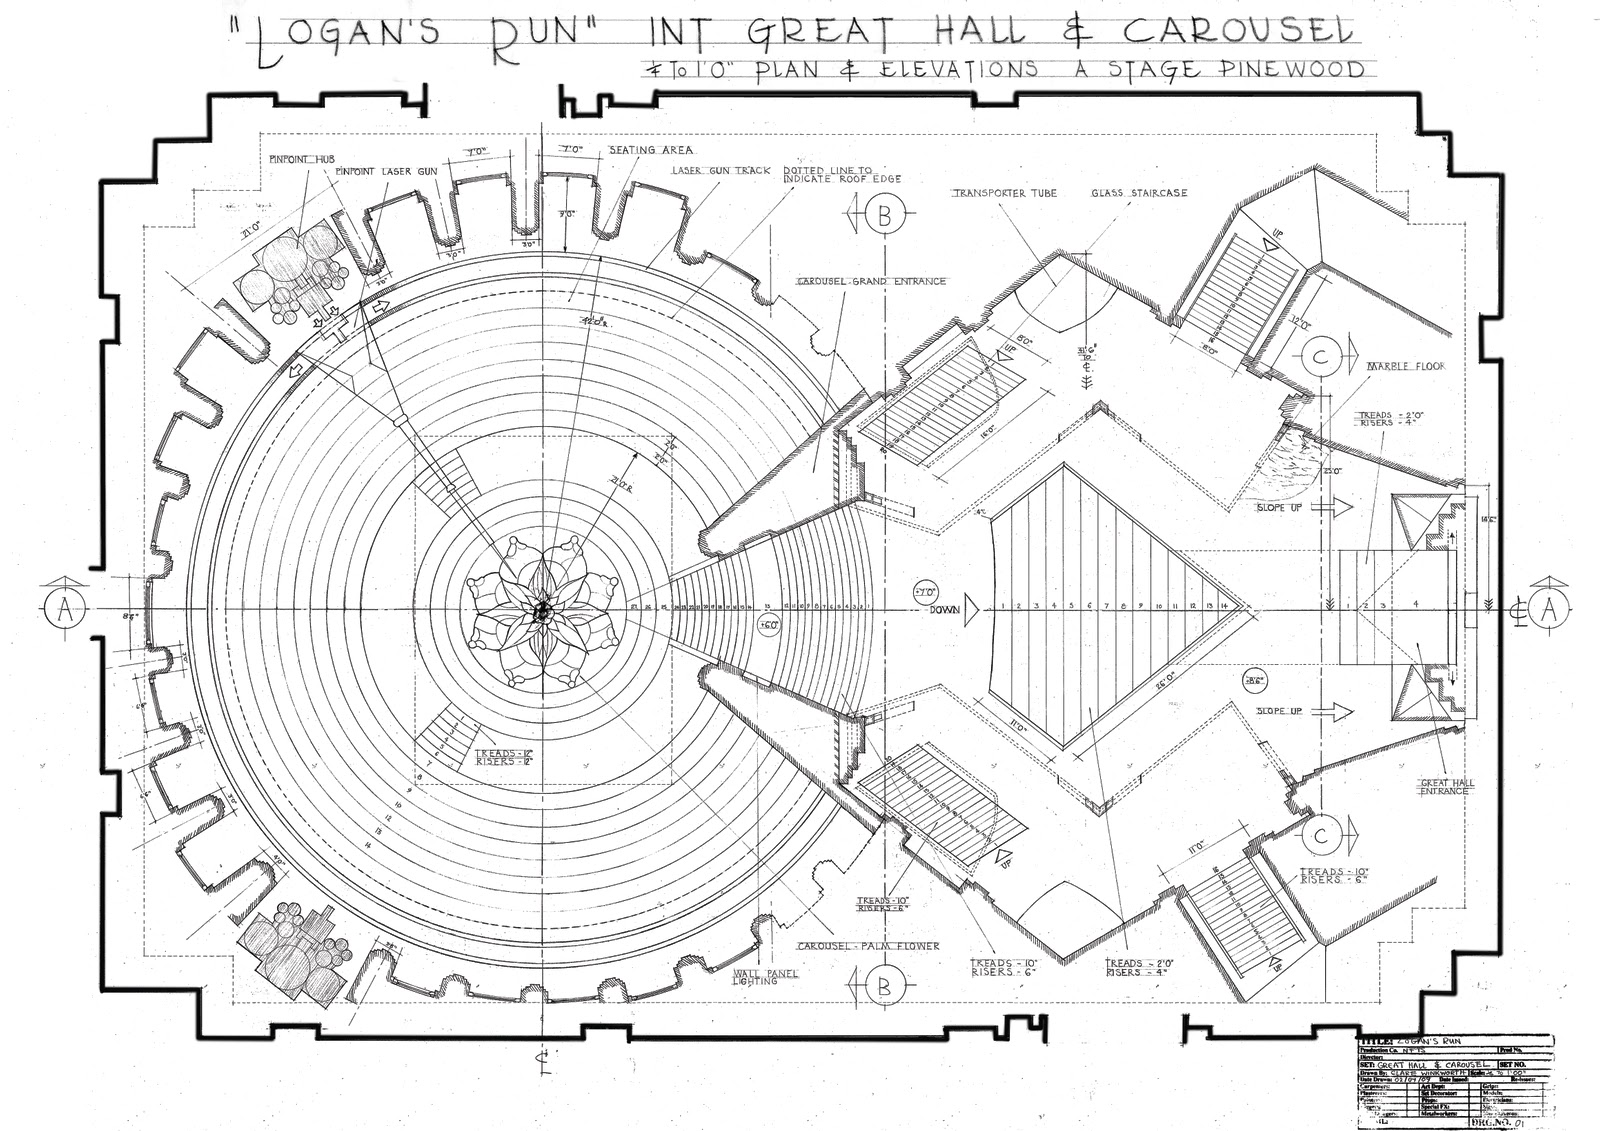 Elevation Plan Drawing Software : Elevation drawing software